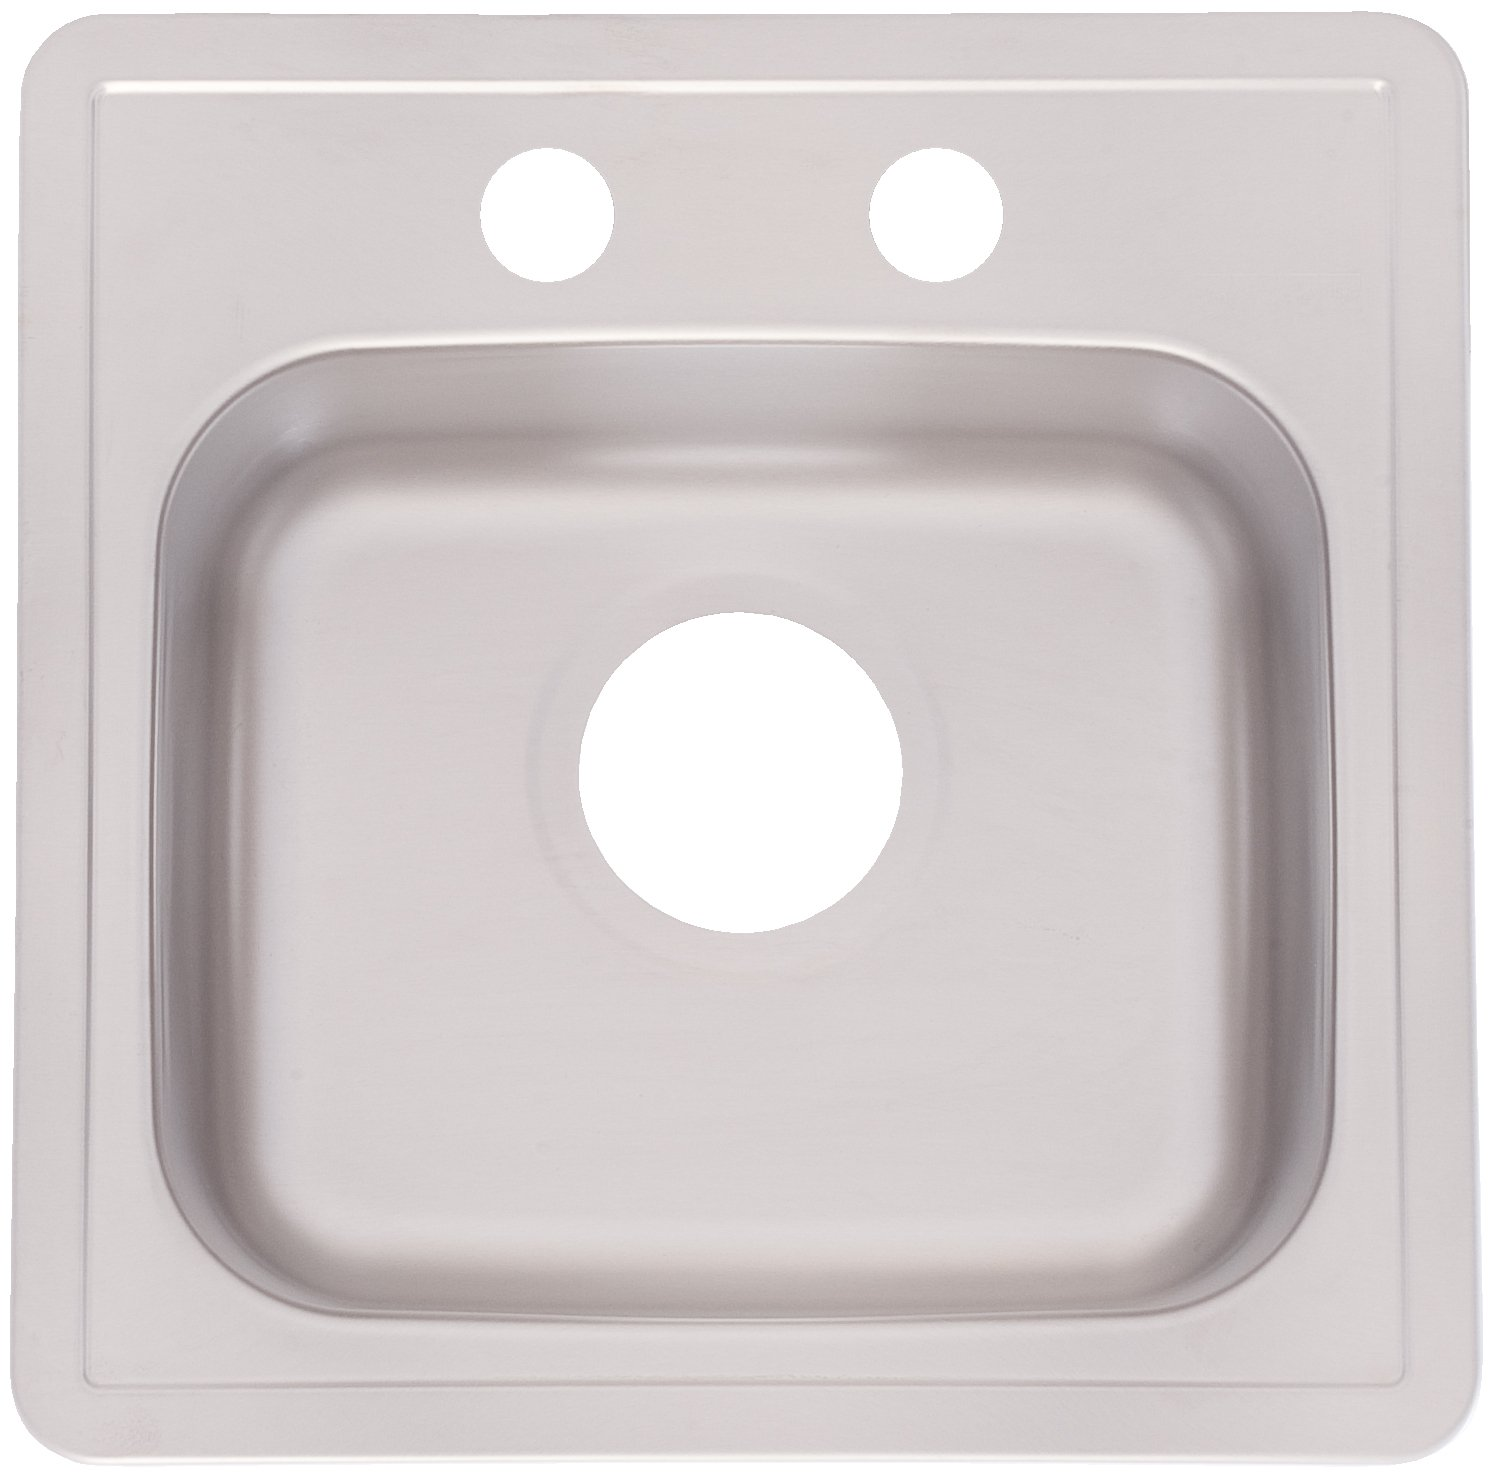 Kindred FBS602-35NB Single Bowl Stainless Steel 15x15in. Topmount Sink by KINDRED